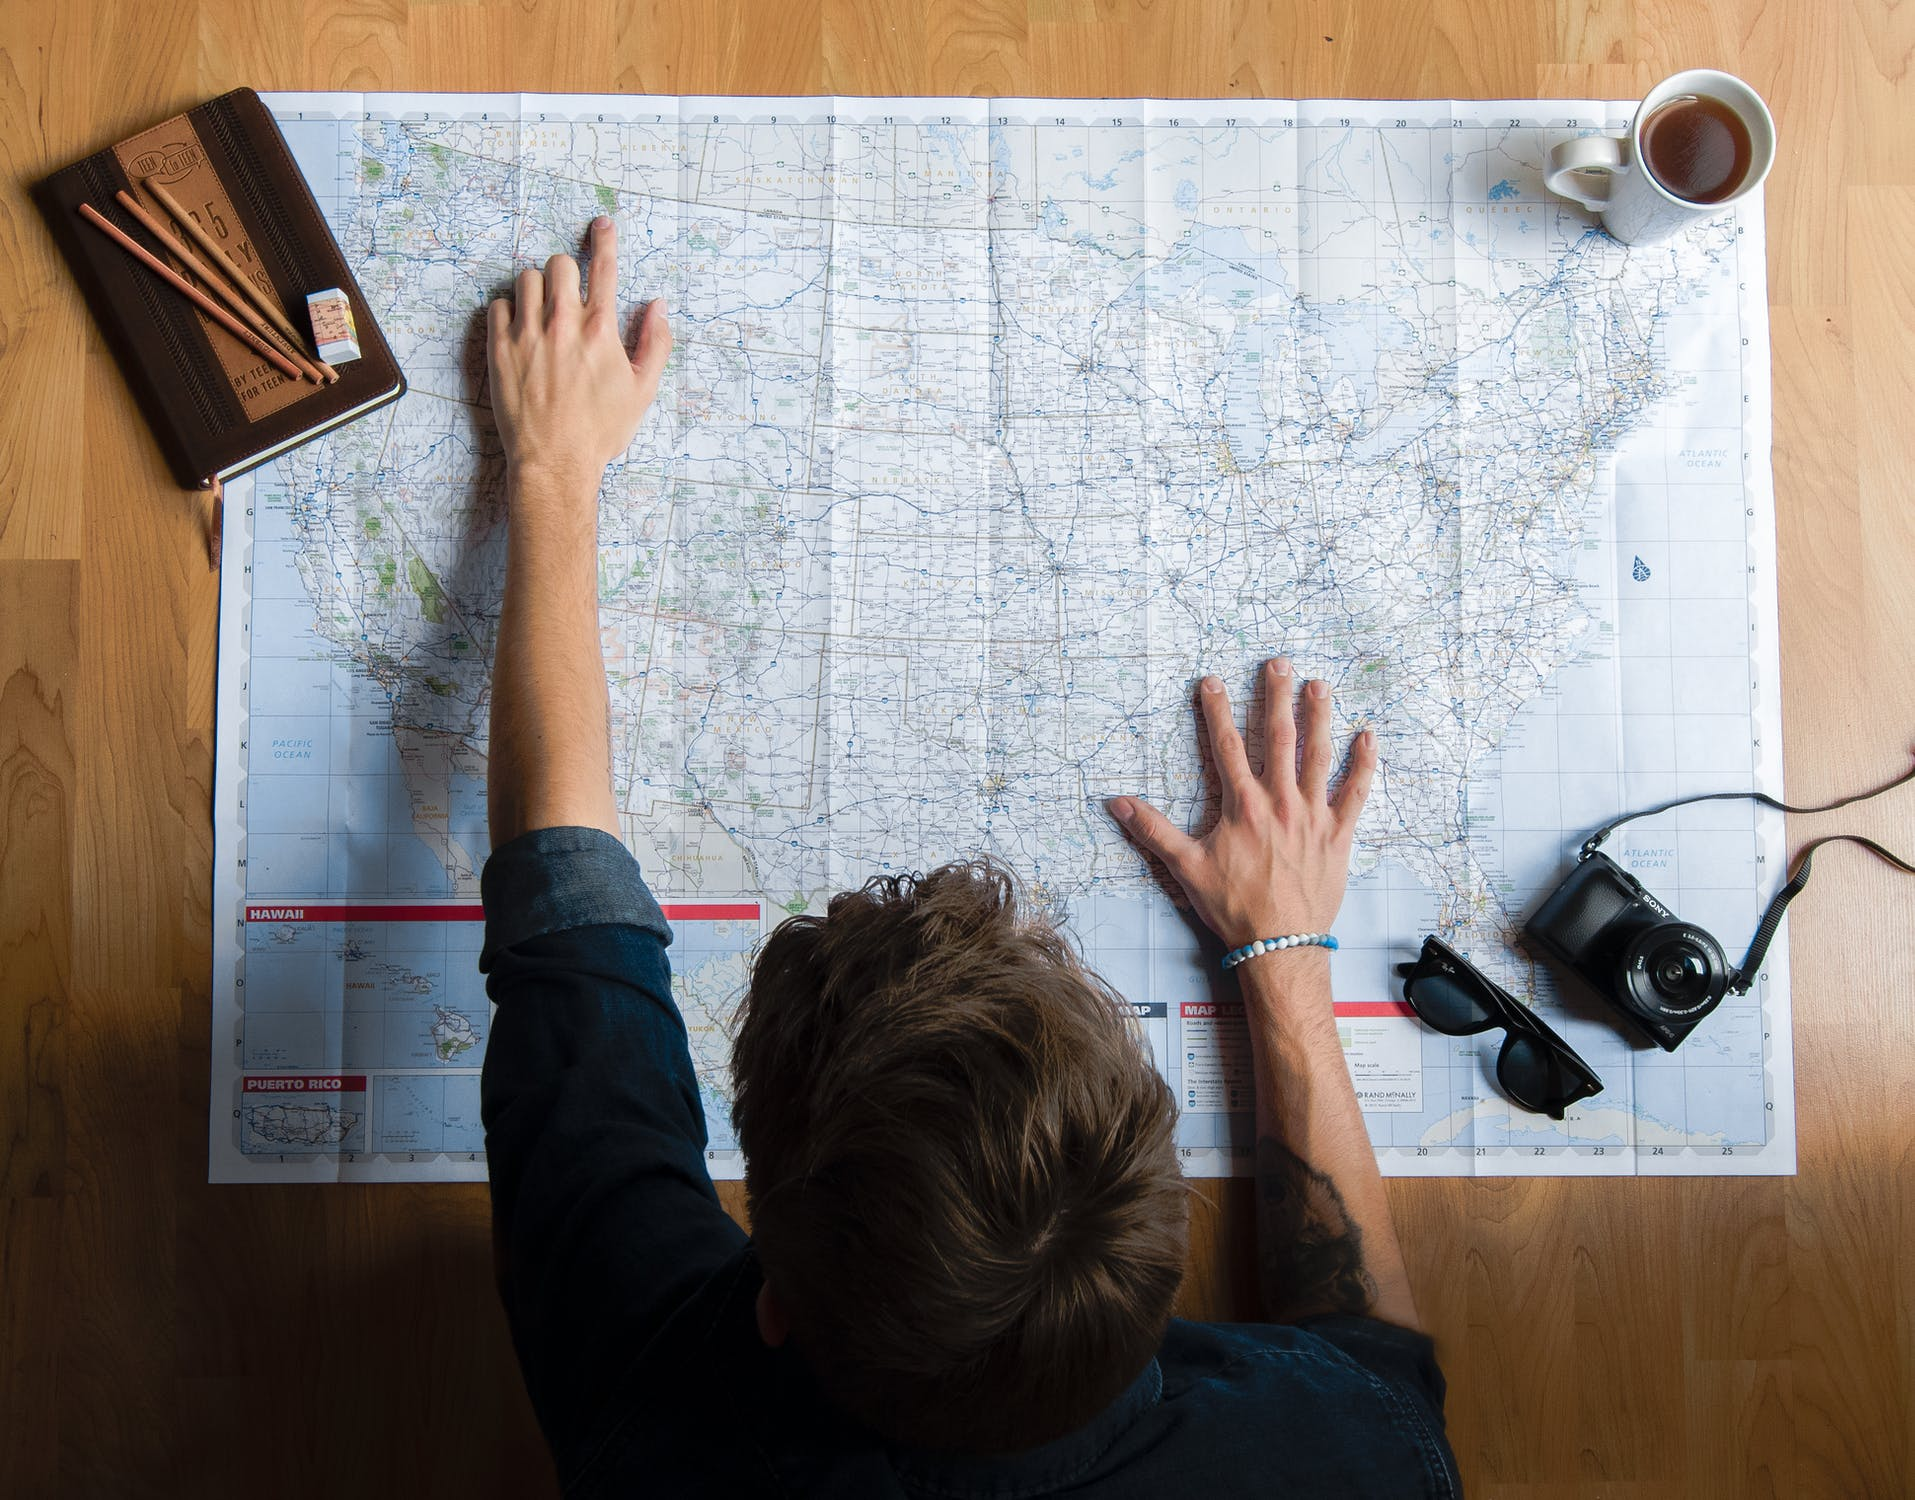 Person looking at map and planning journey